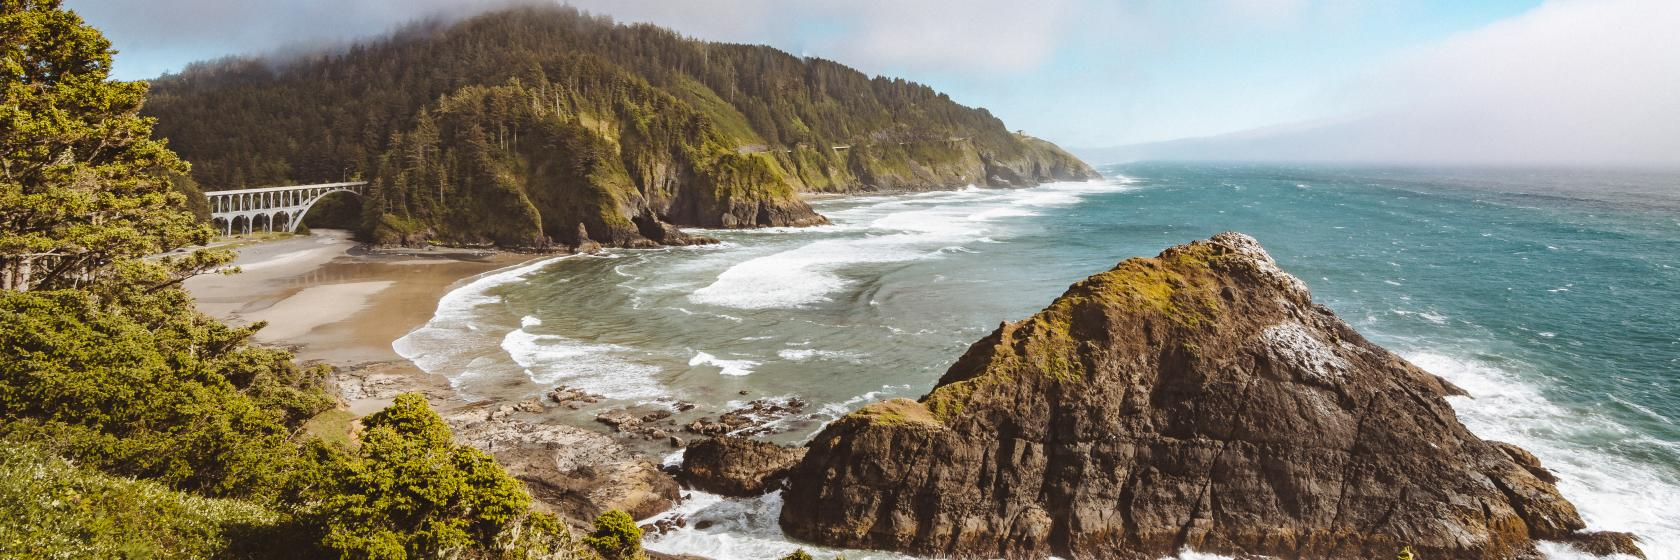 Oregon Coast by Taylor Higgins